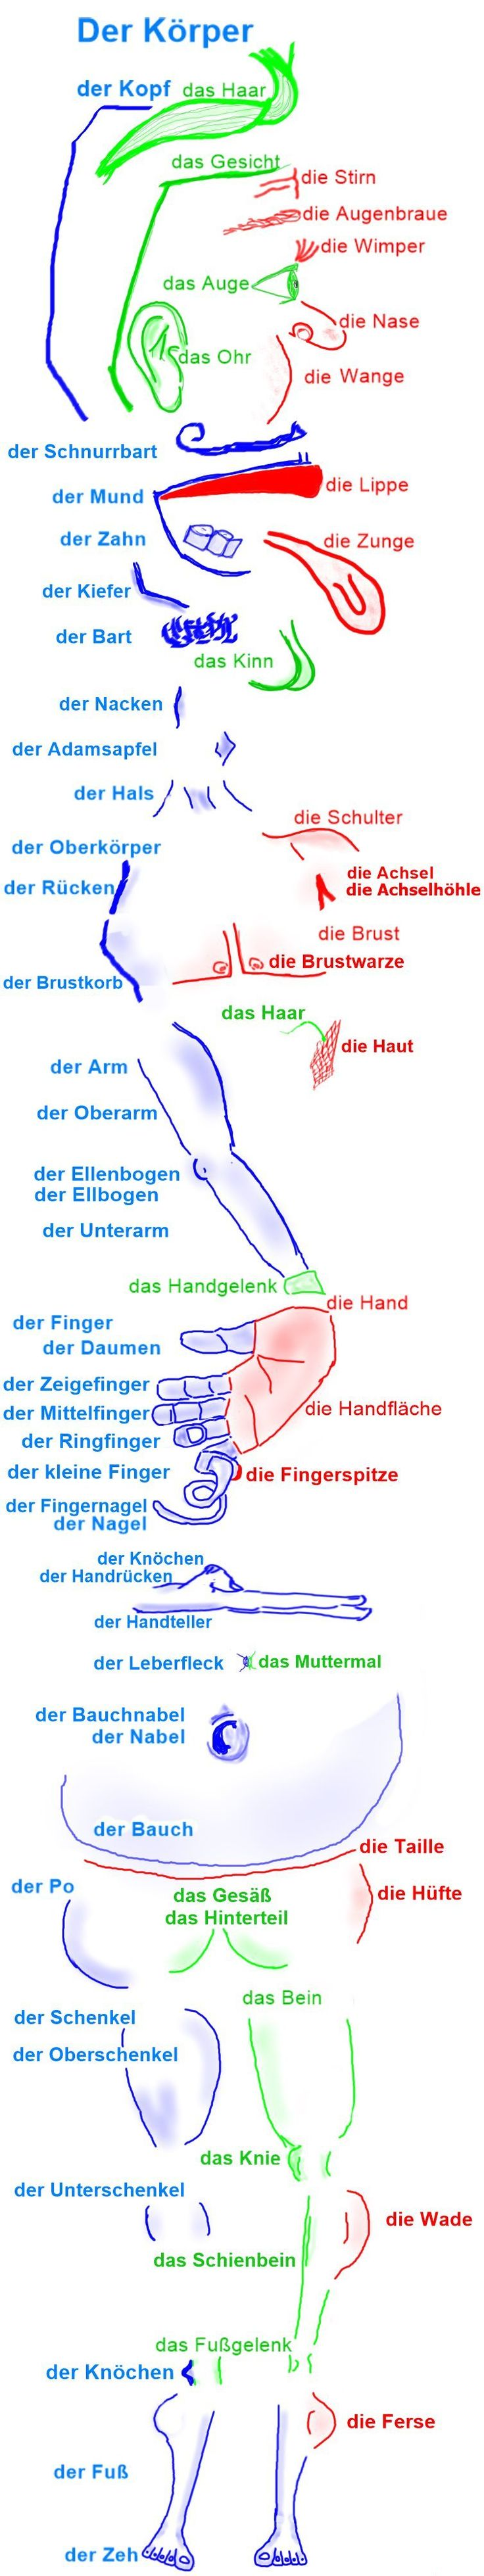 der Körper. Body parts in german. Help learning and memorize German vocabulary with images or Bildwörter. Create or add your own word pin and tag it with #germanmems so we can add it to the Mems board. Aprender vocabulario alemán. Alemão.